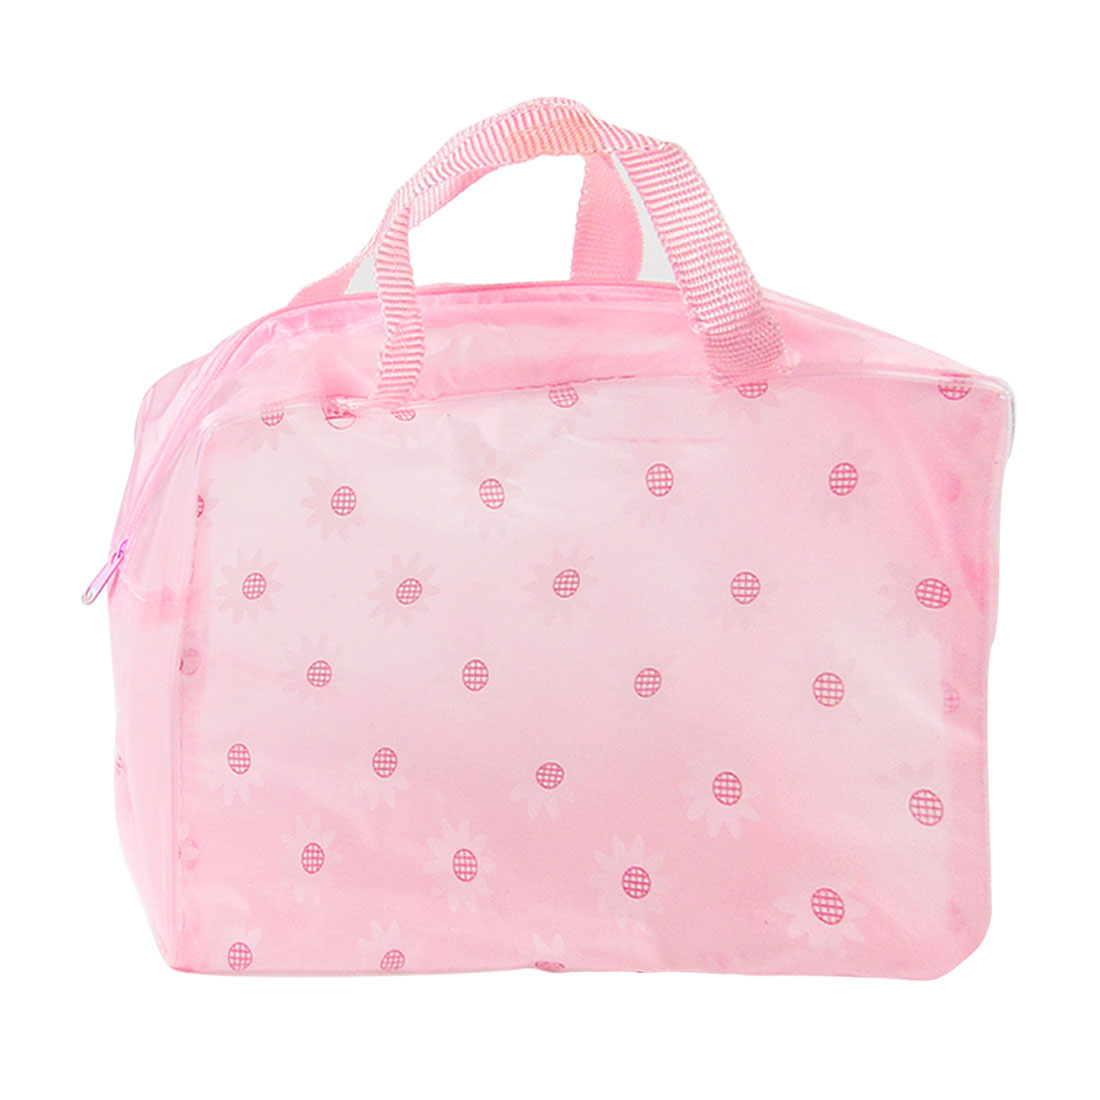 Lady PVC Portable Cosmetic Makeup Bag Travel Accessory Organizer Light Pink